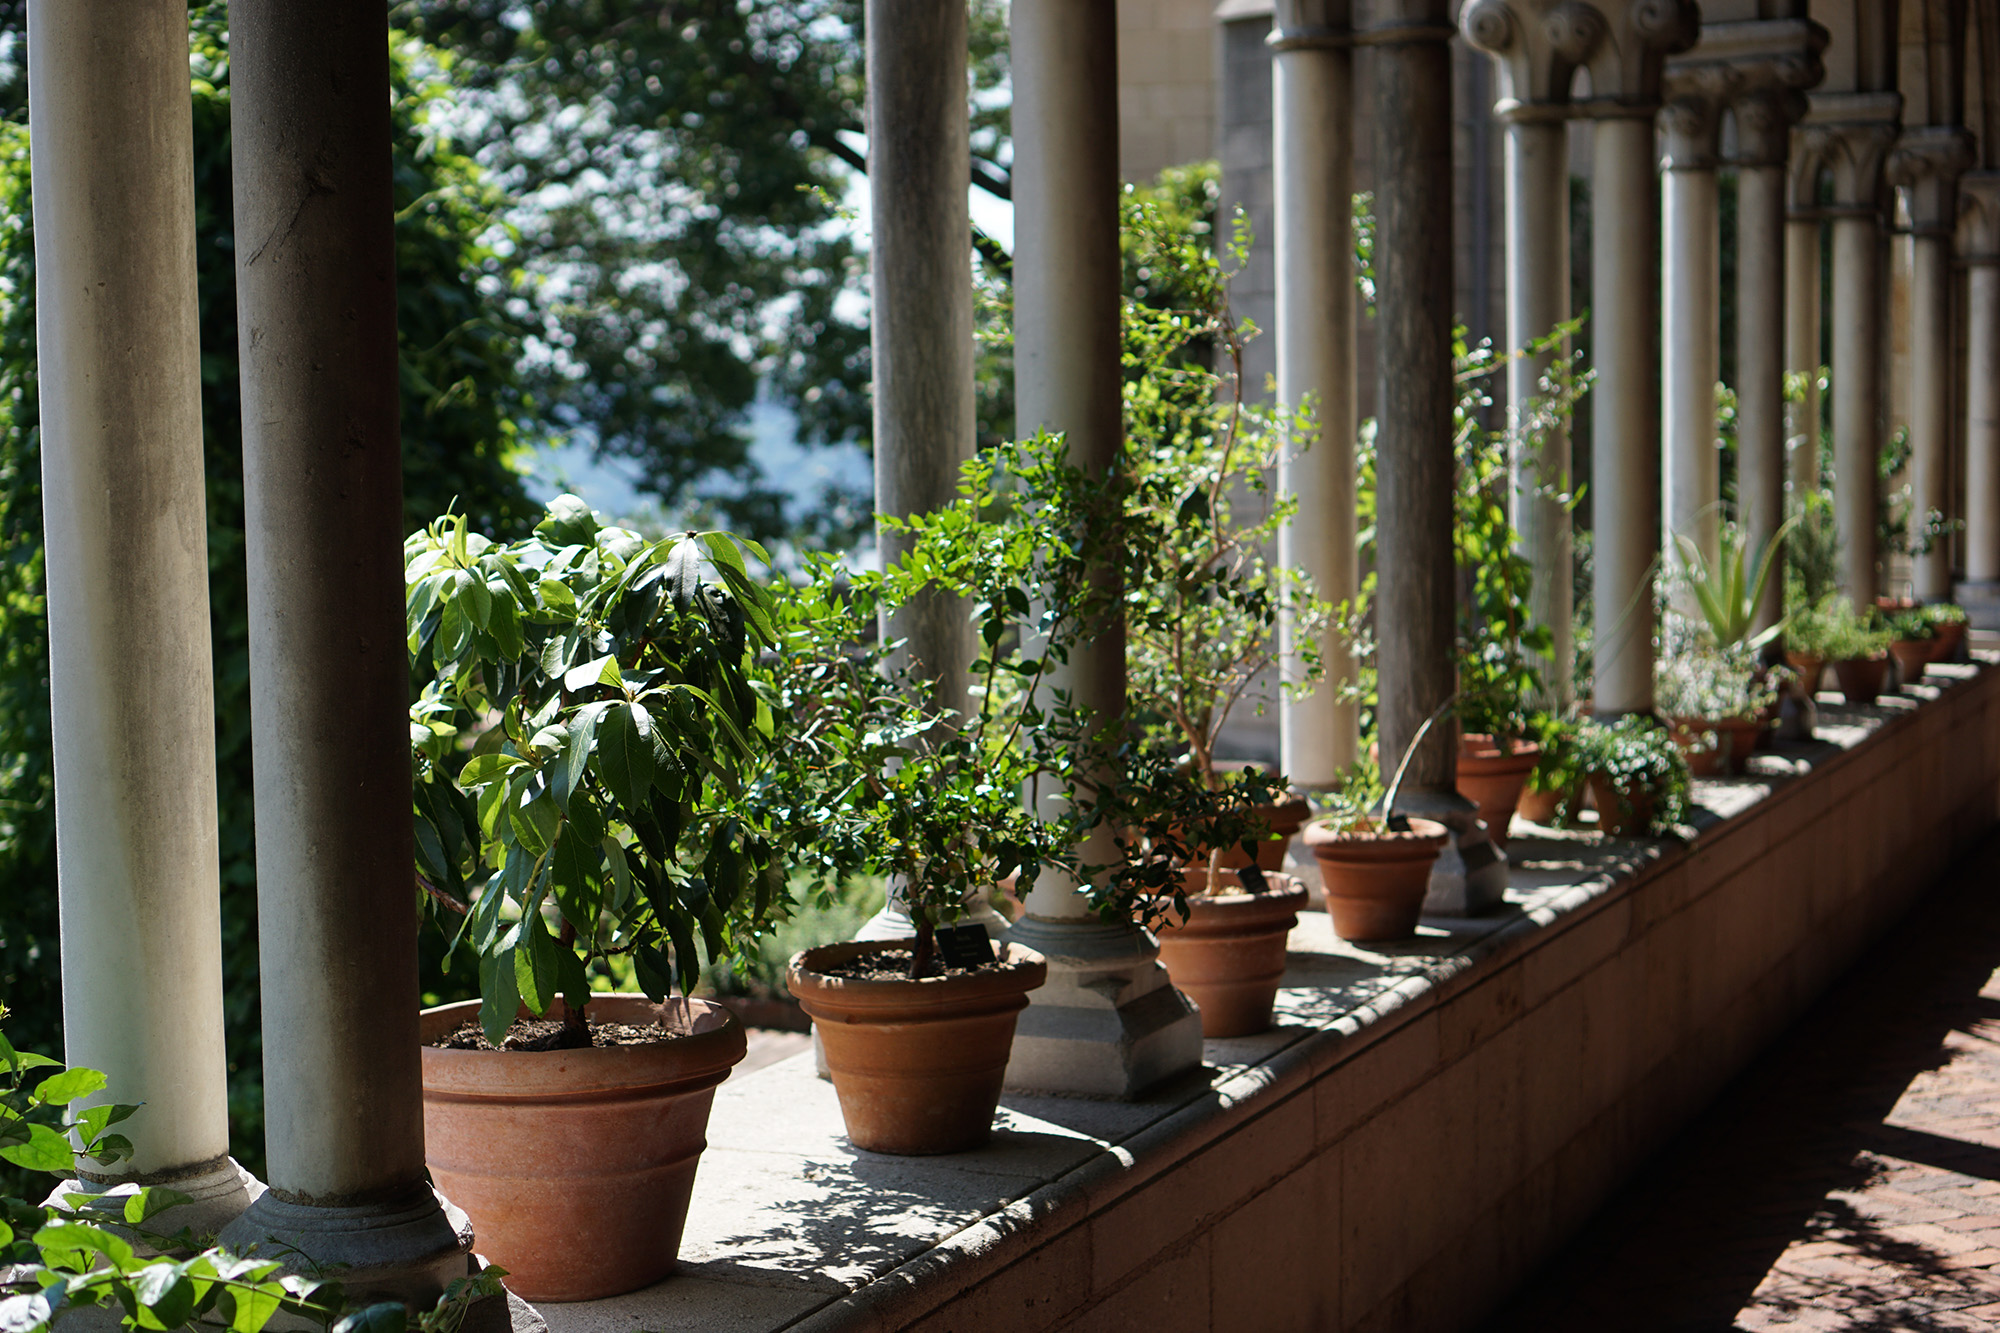 The Cloisters, New York City / Darker than Green